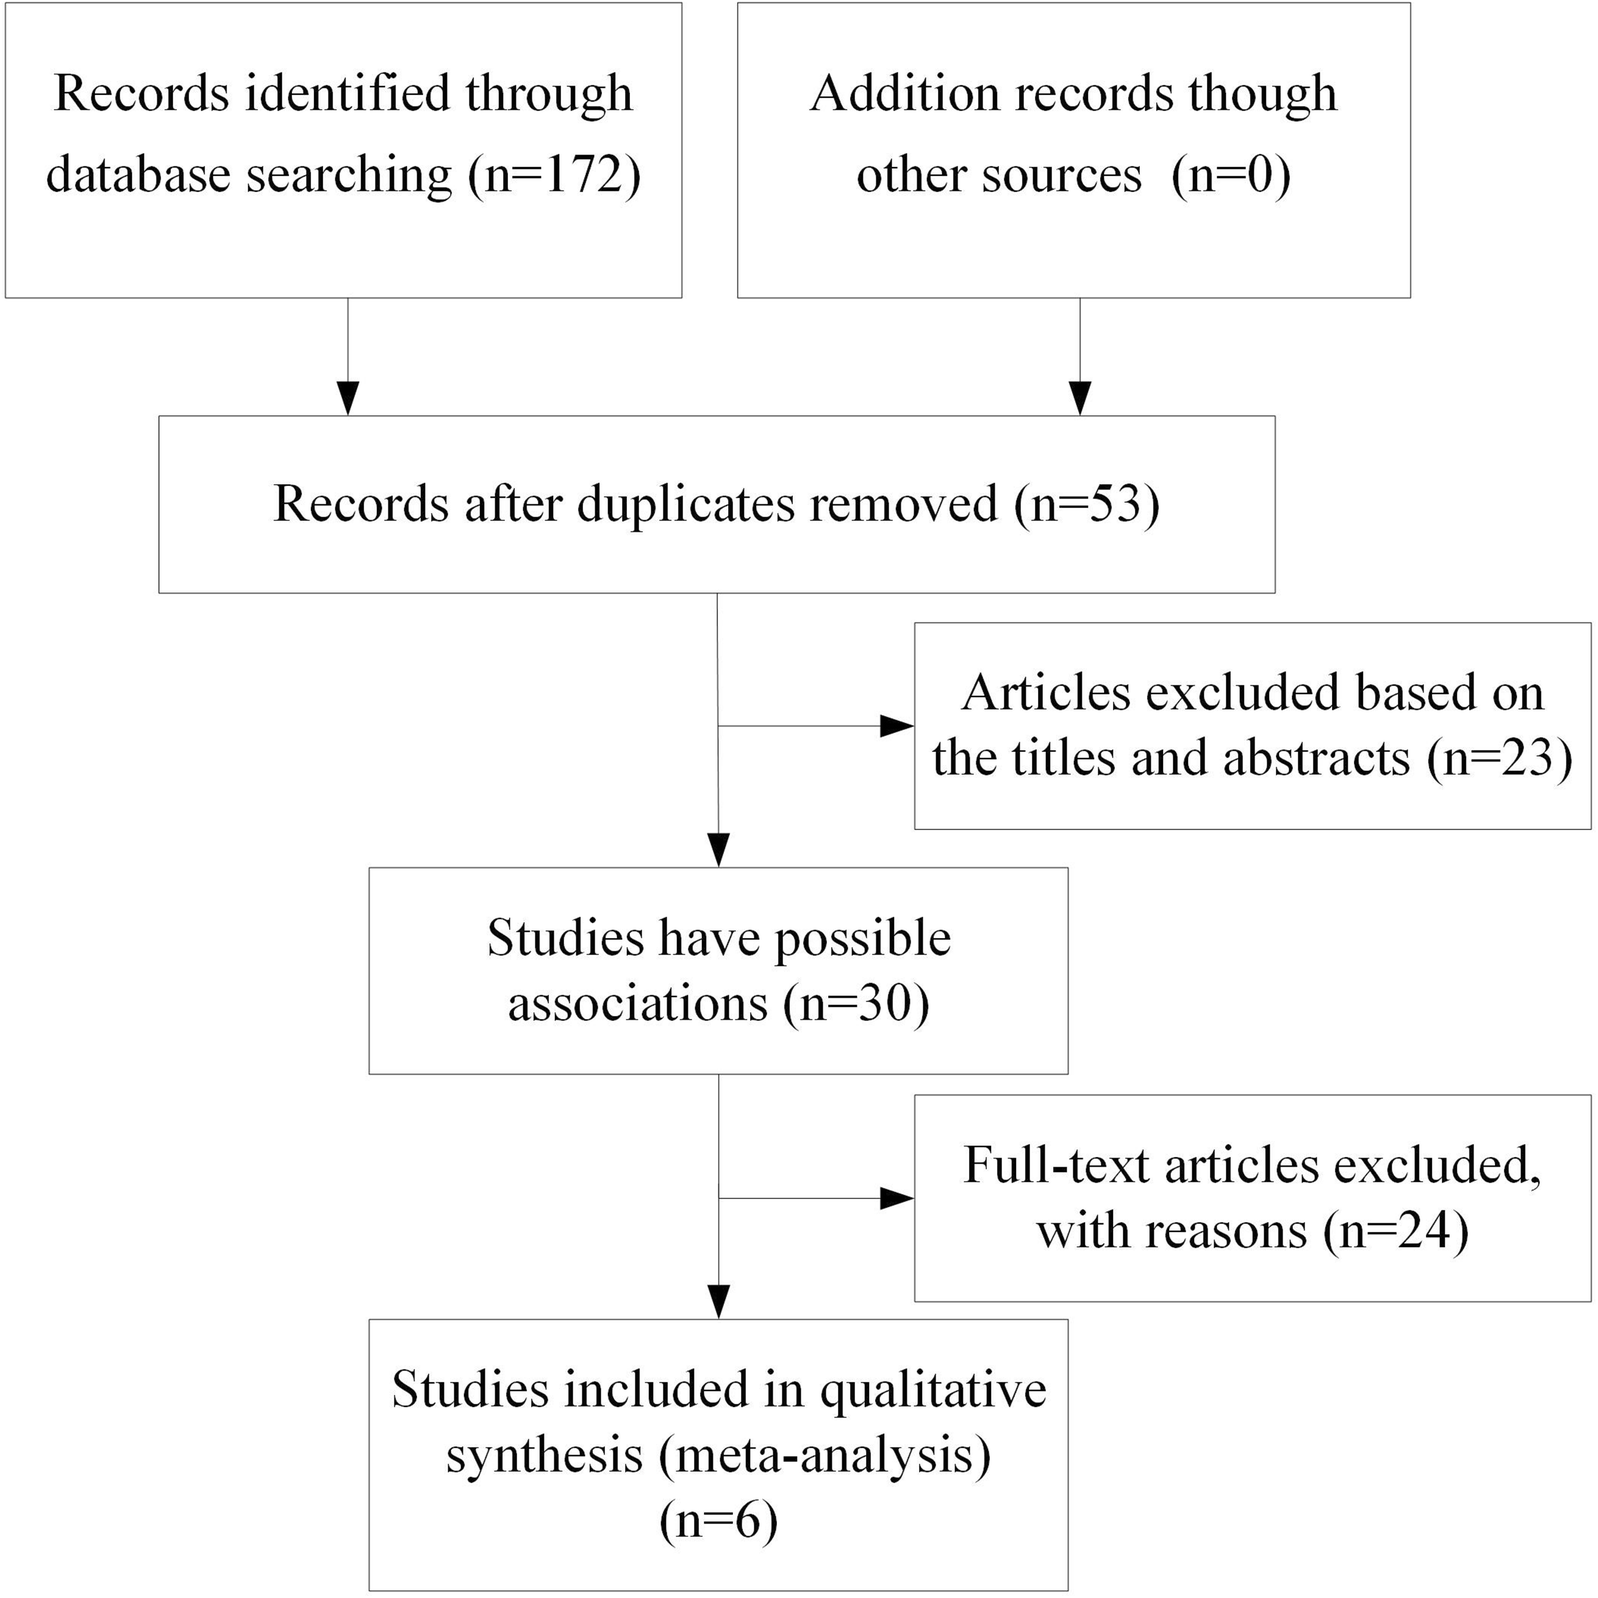 Autism Study Identifies Clear Gene >> Analysis Of The Snp Rs3747333 And Rs3747334 In Nlgn4x Gene In Autism